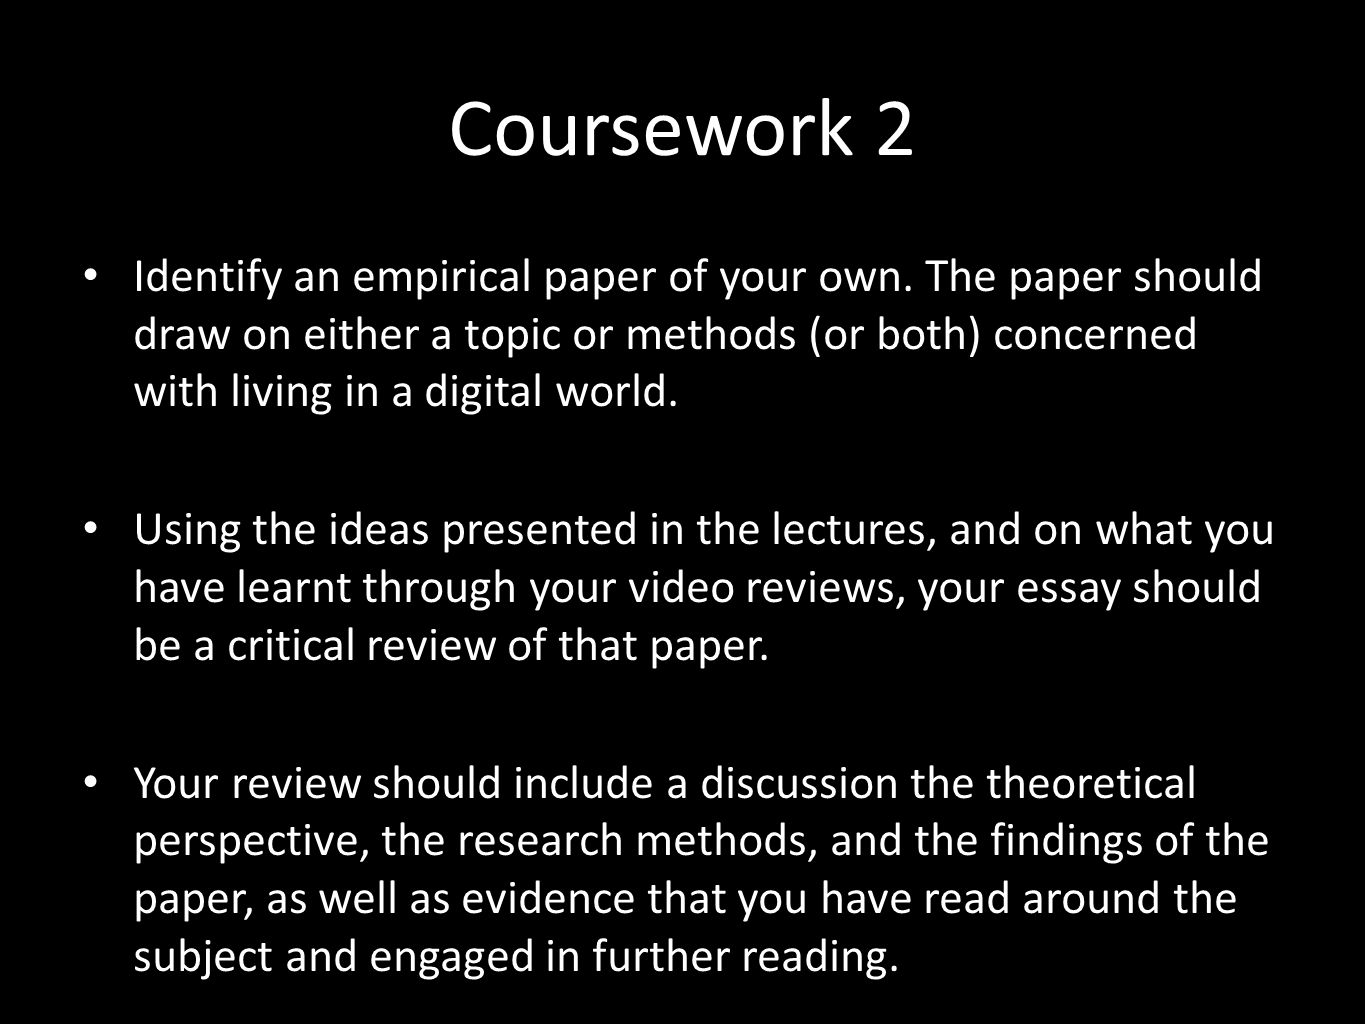 Coursework 2 Identify an empirical paper of your own. The paper should draw on either a topic or methods (or both) concerned with living in a digital